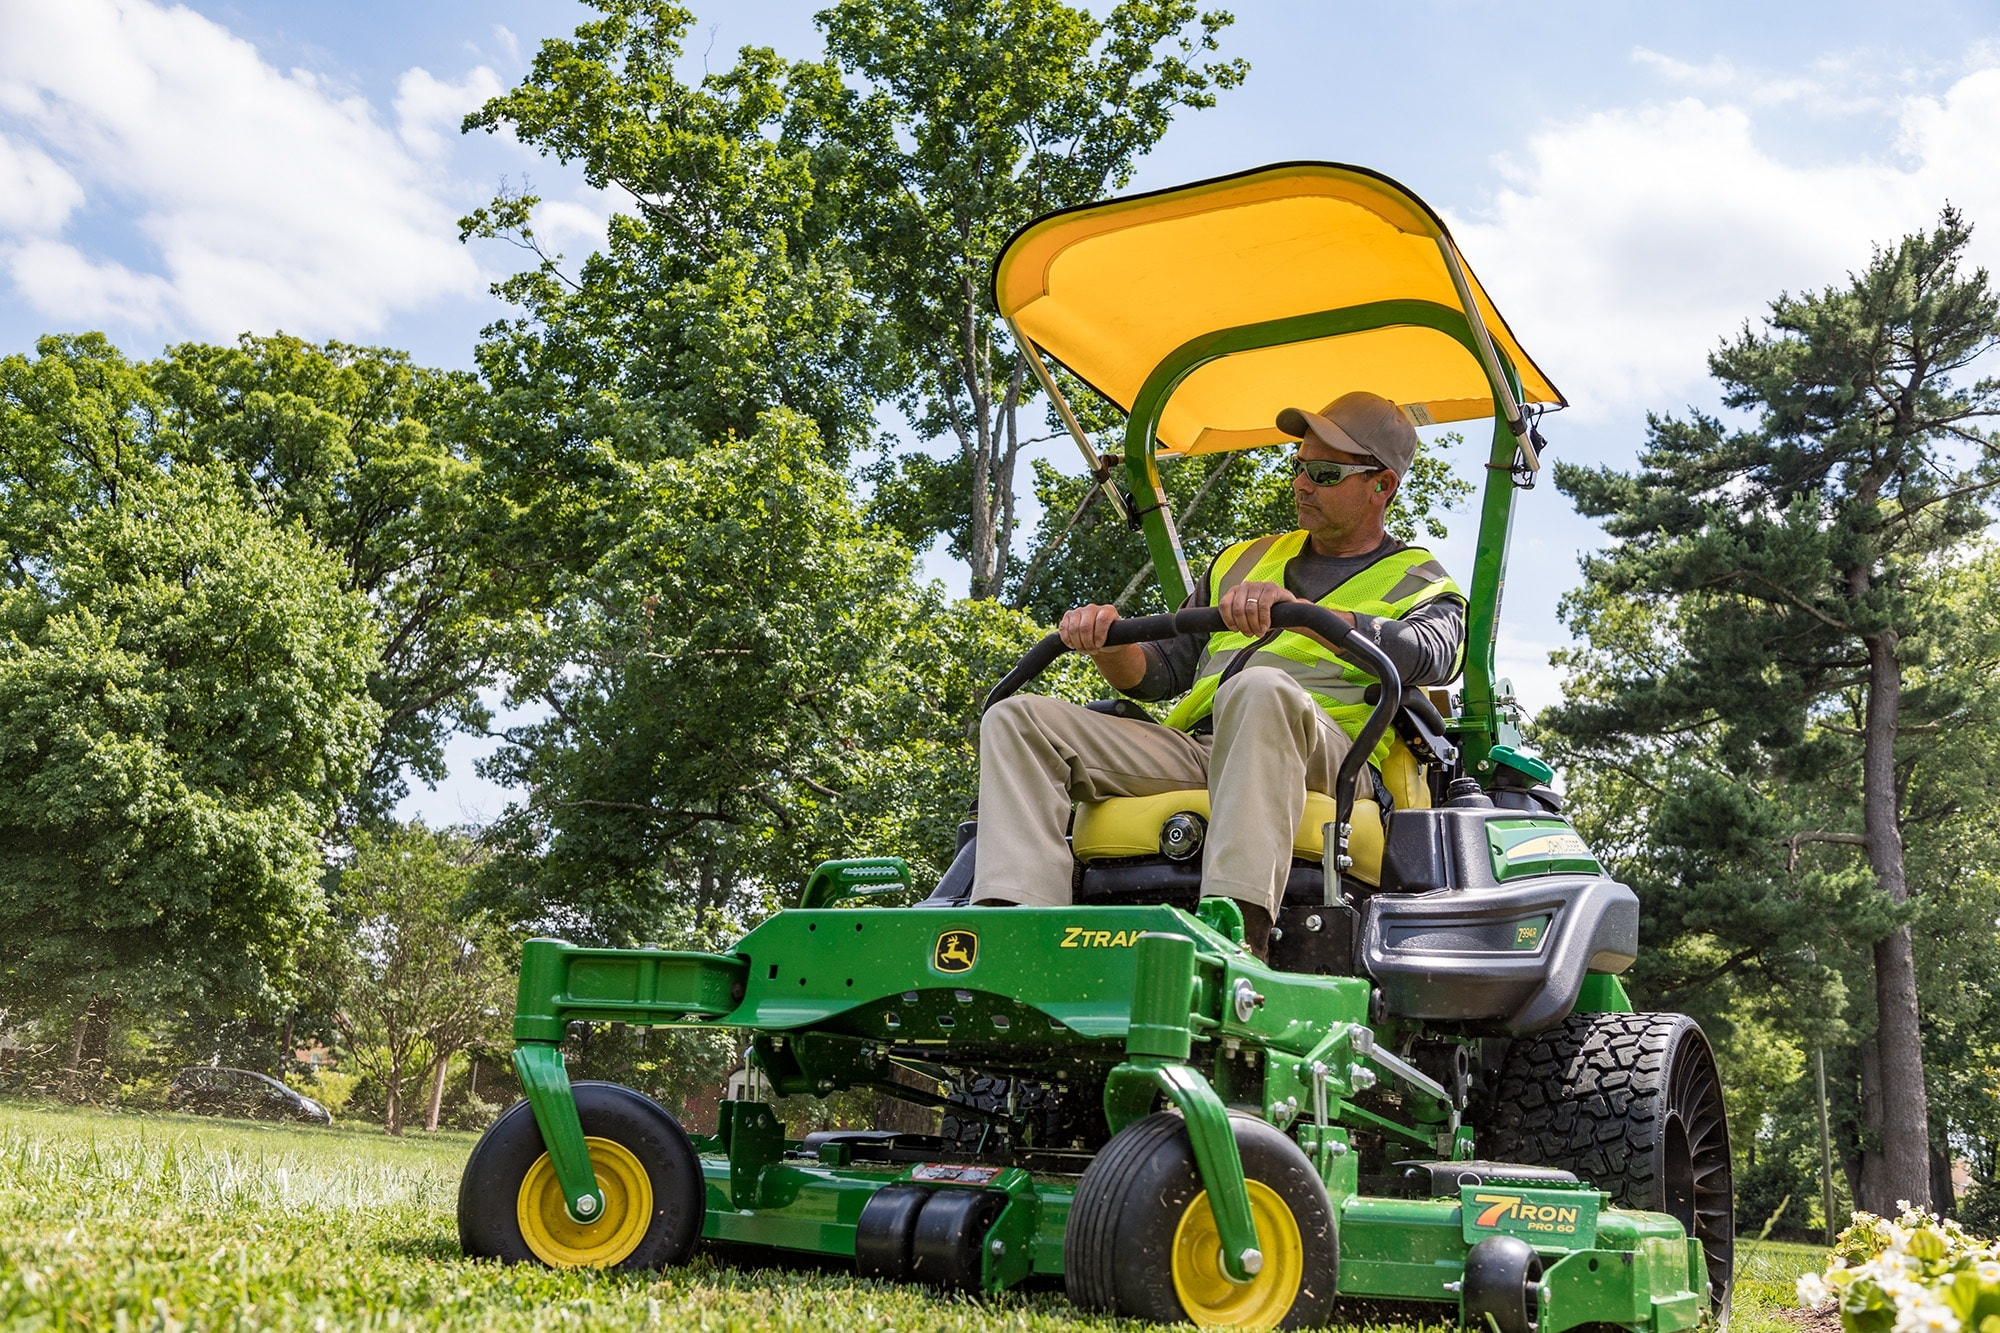 Z994R Diesel ZTrak(TM) Zero-Turn Mower